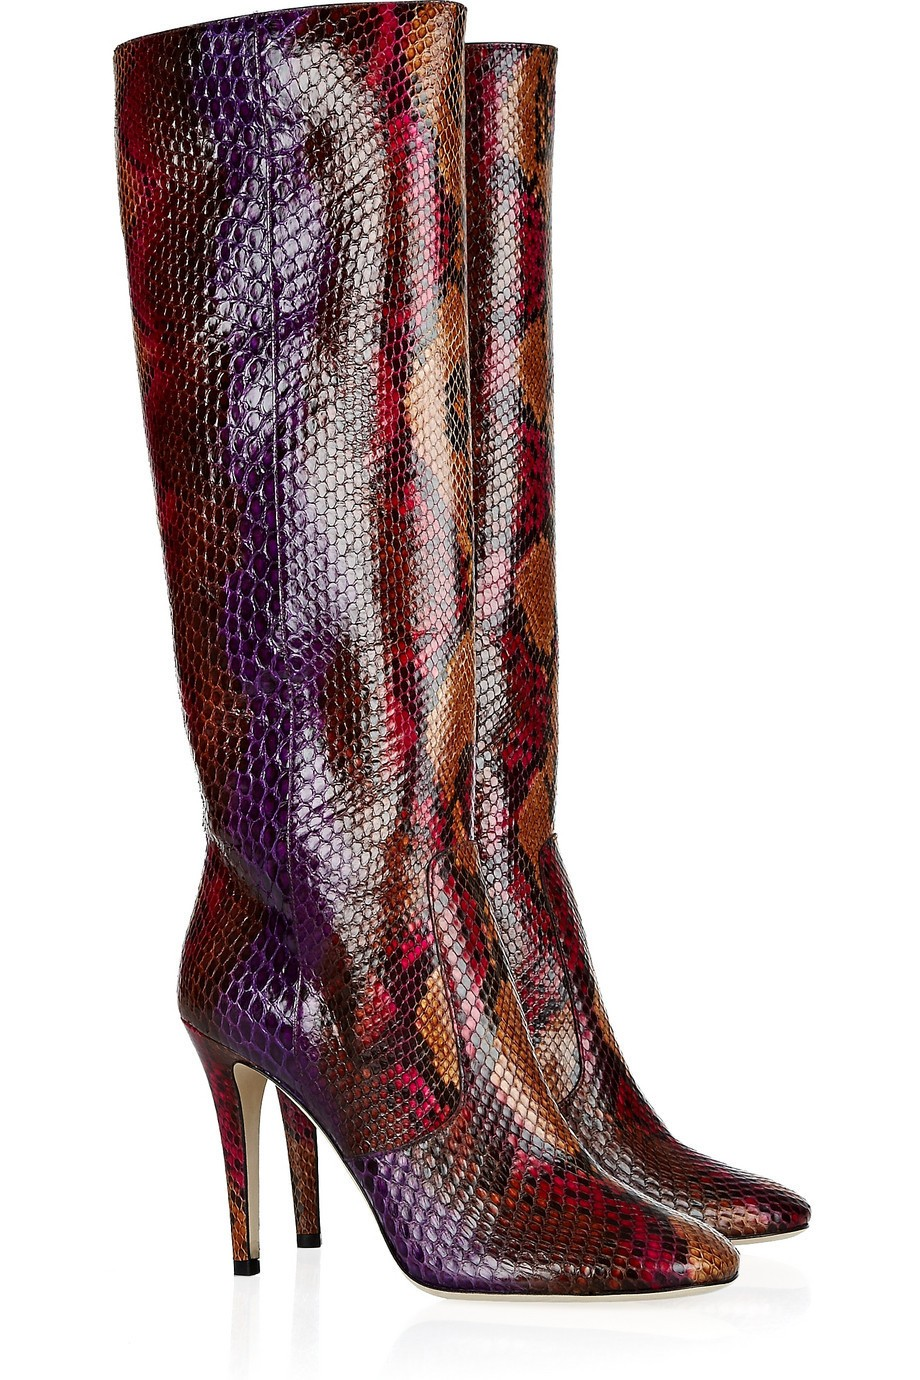 Tosca python knee boots